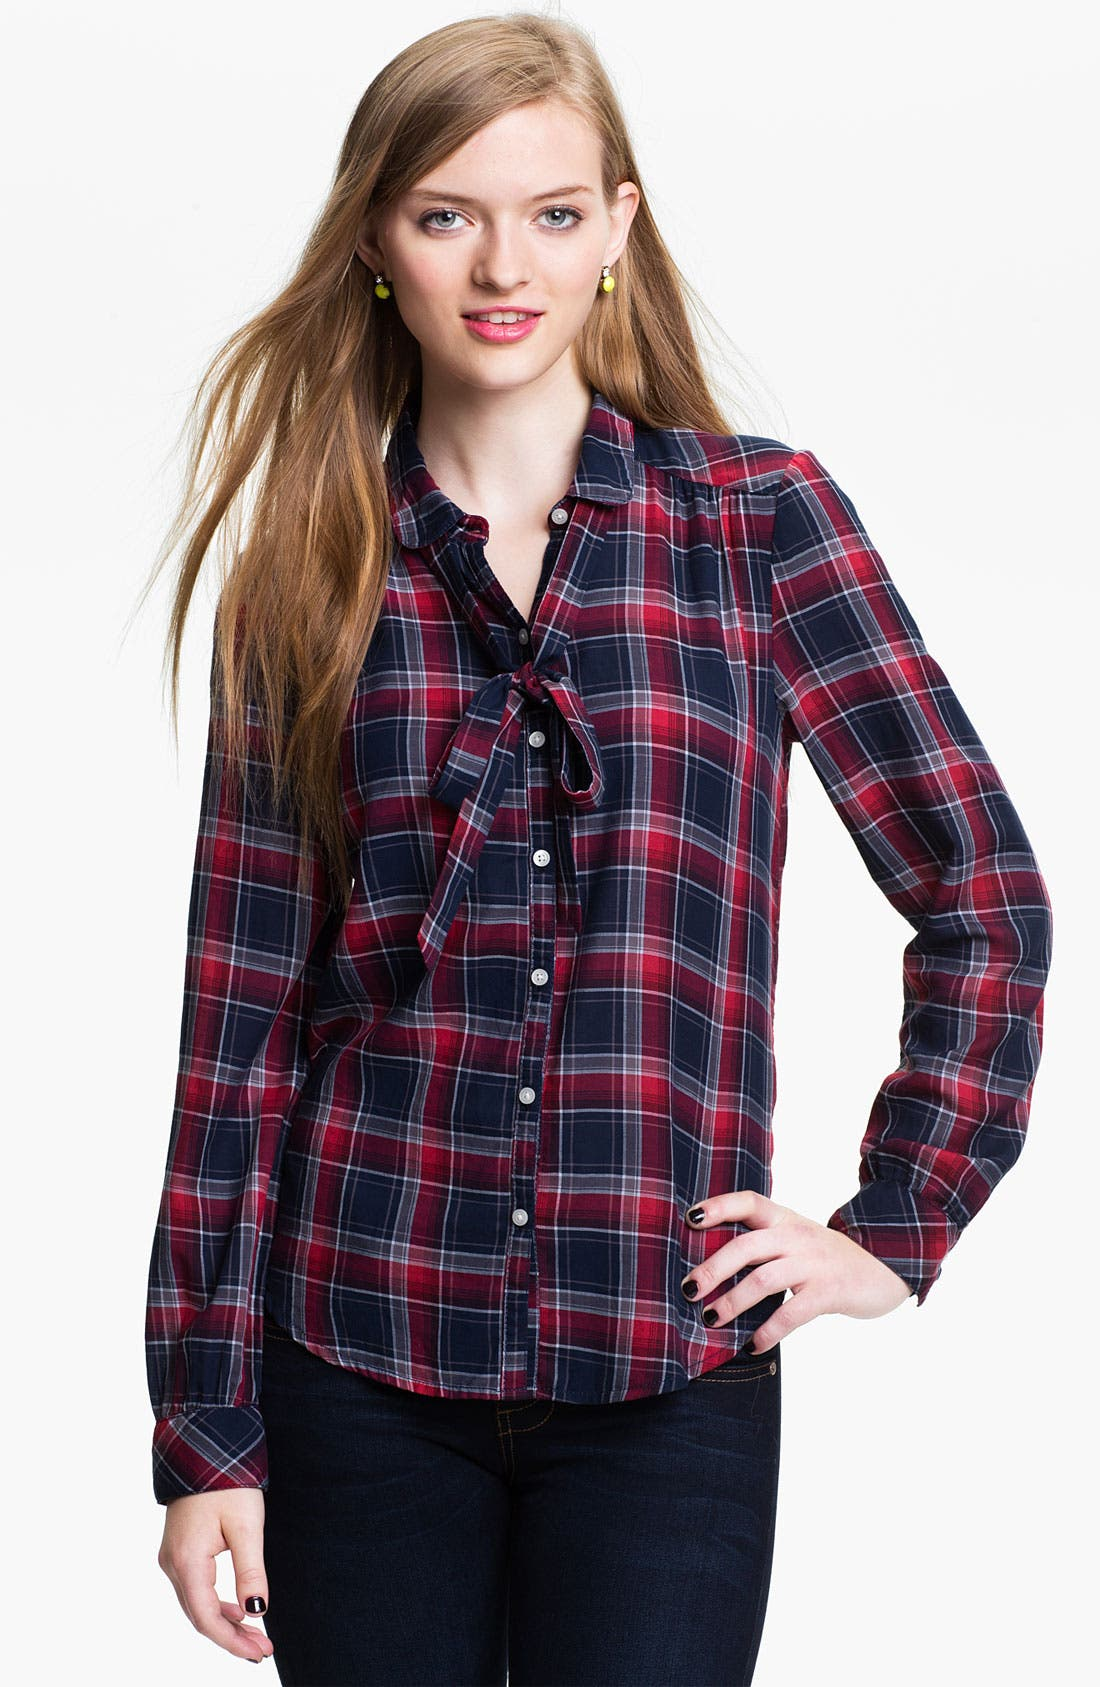 Alternate Image 1 Selected - BP. Tie Neck Plaid Shirt (Juniors)